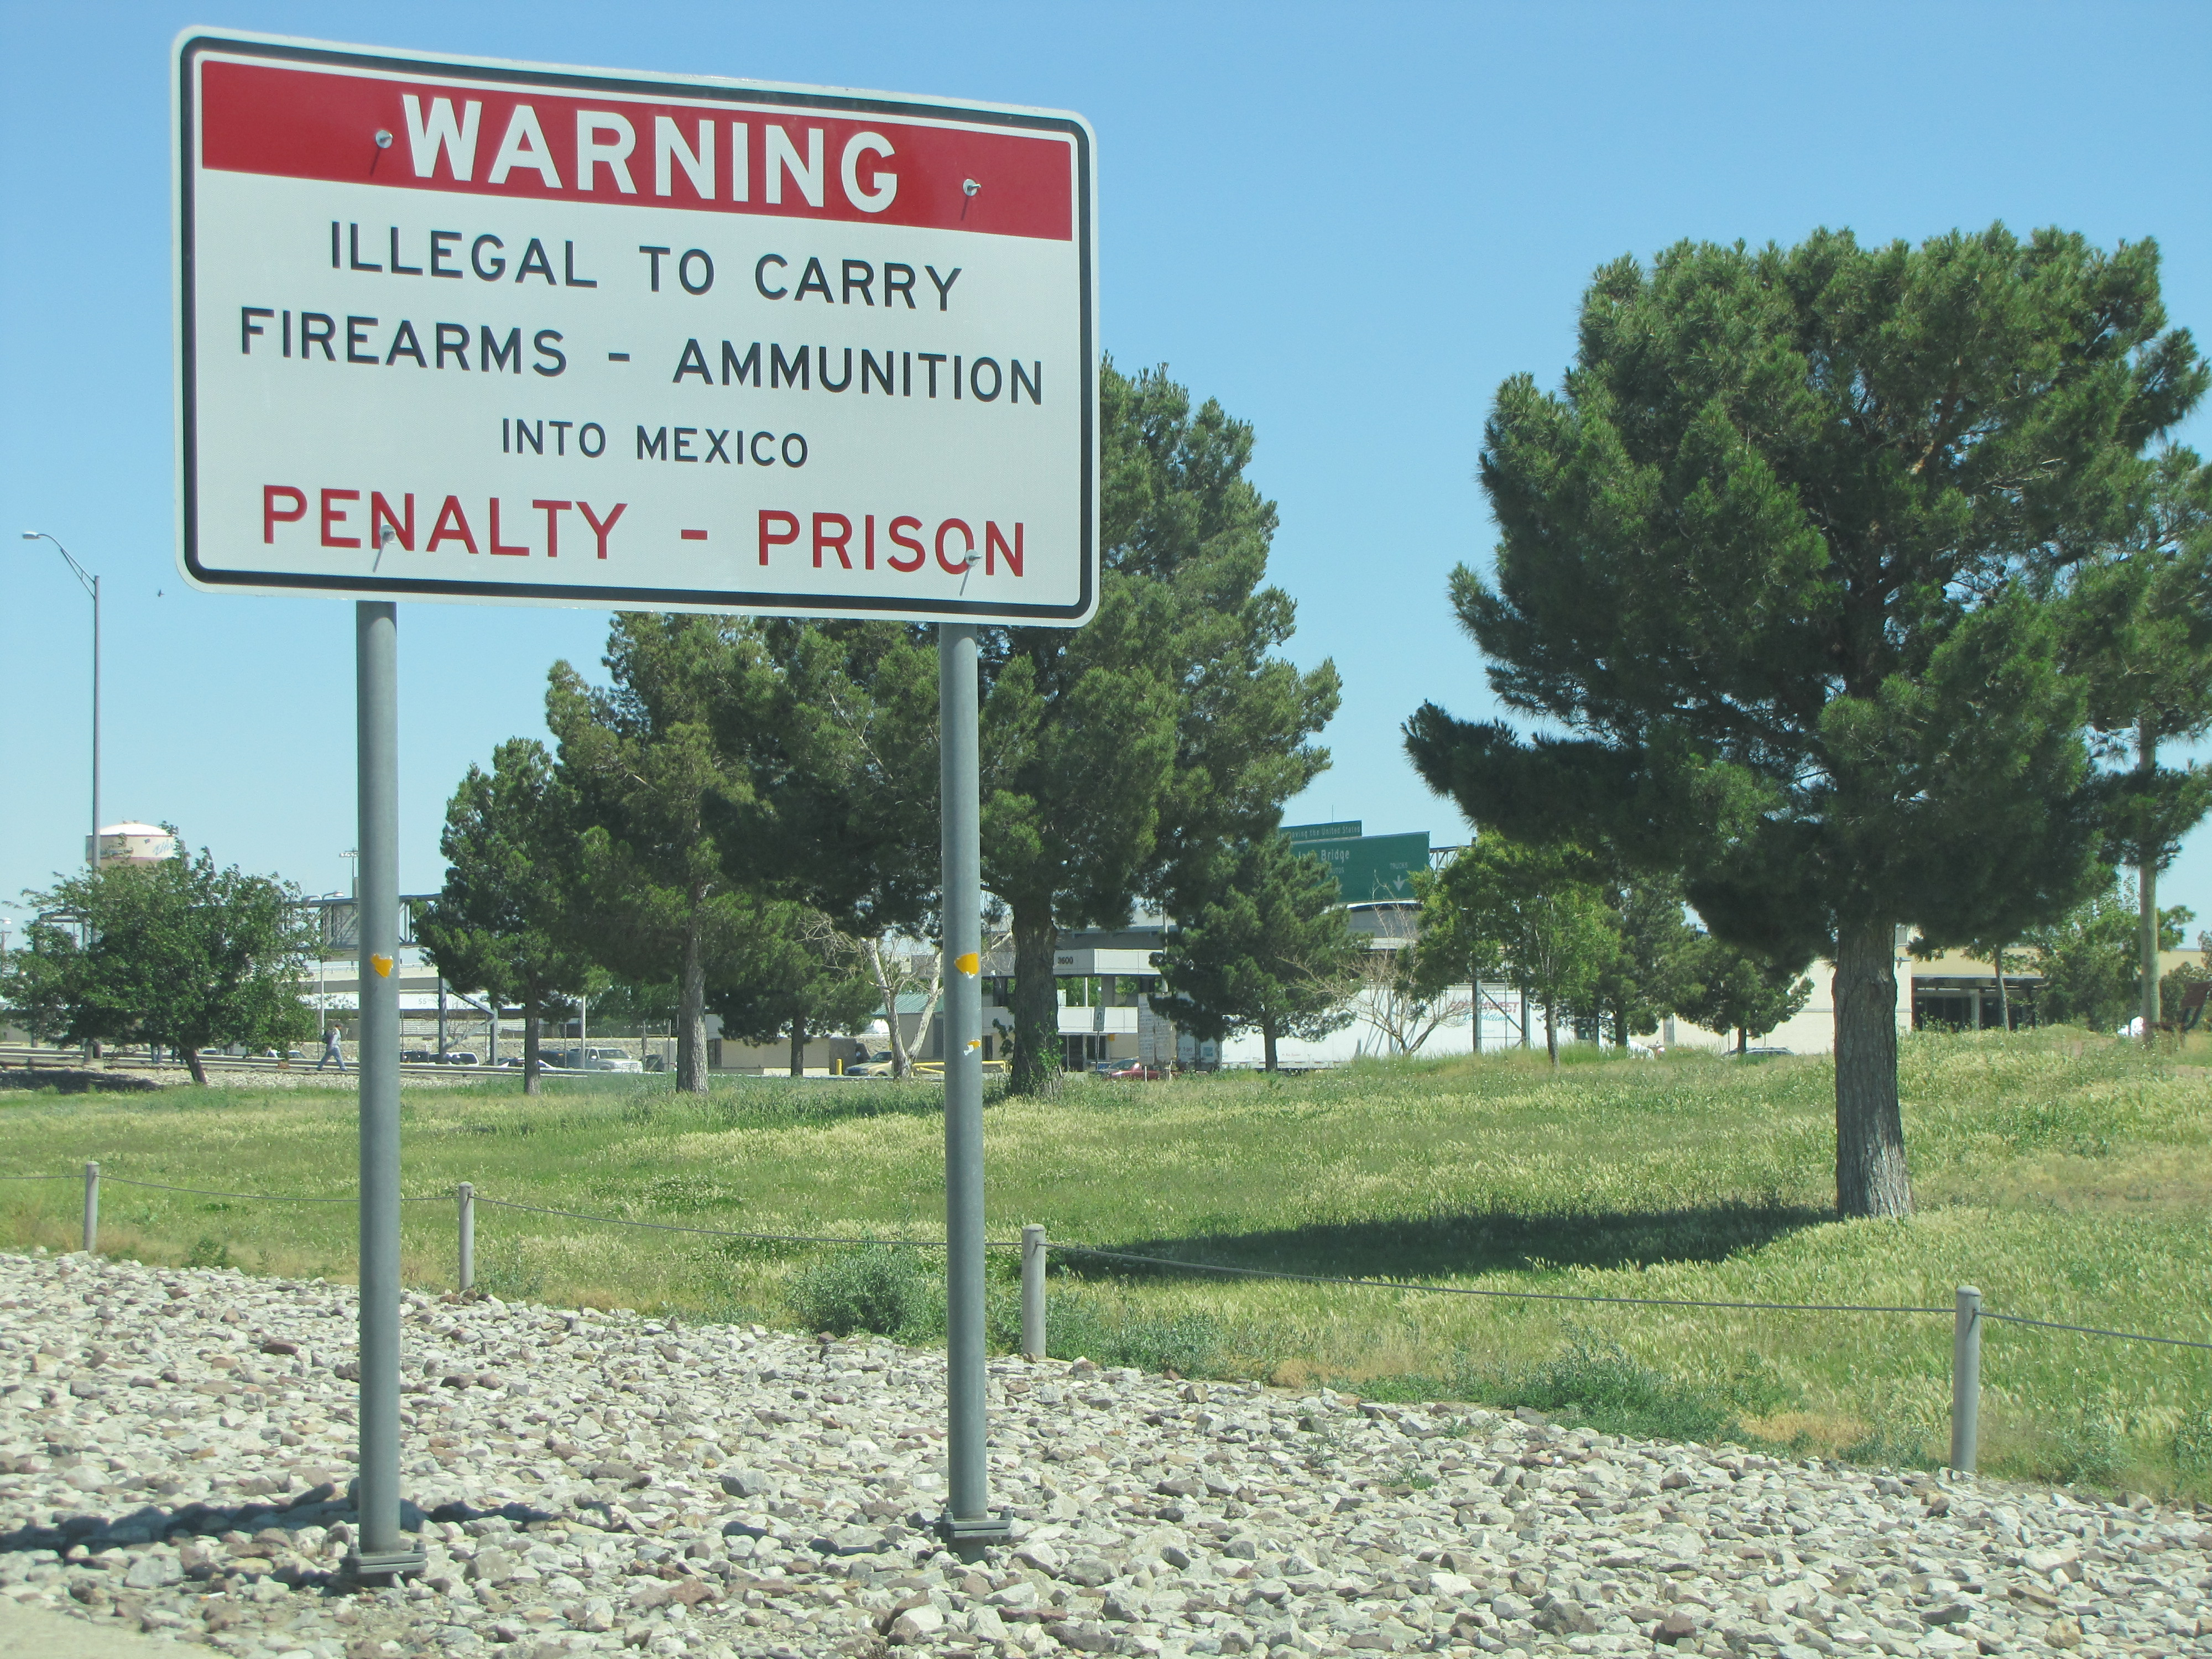 Warning signs like this one are posted along the multiple entrances to the international bridge to Mexico.